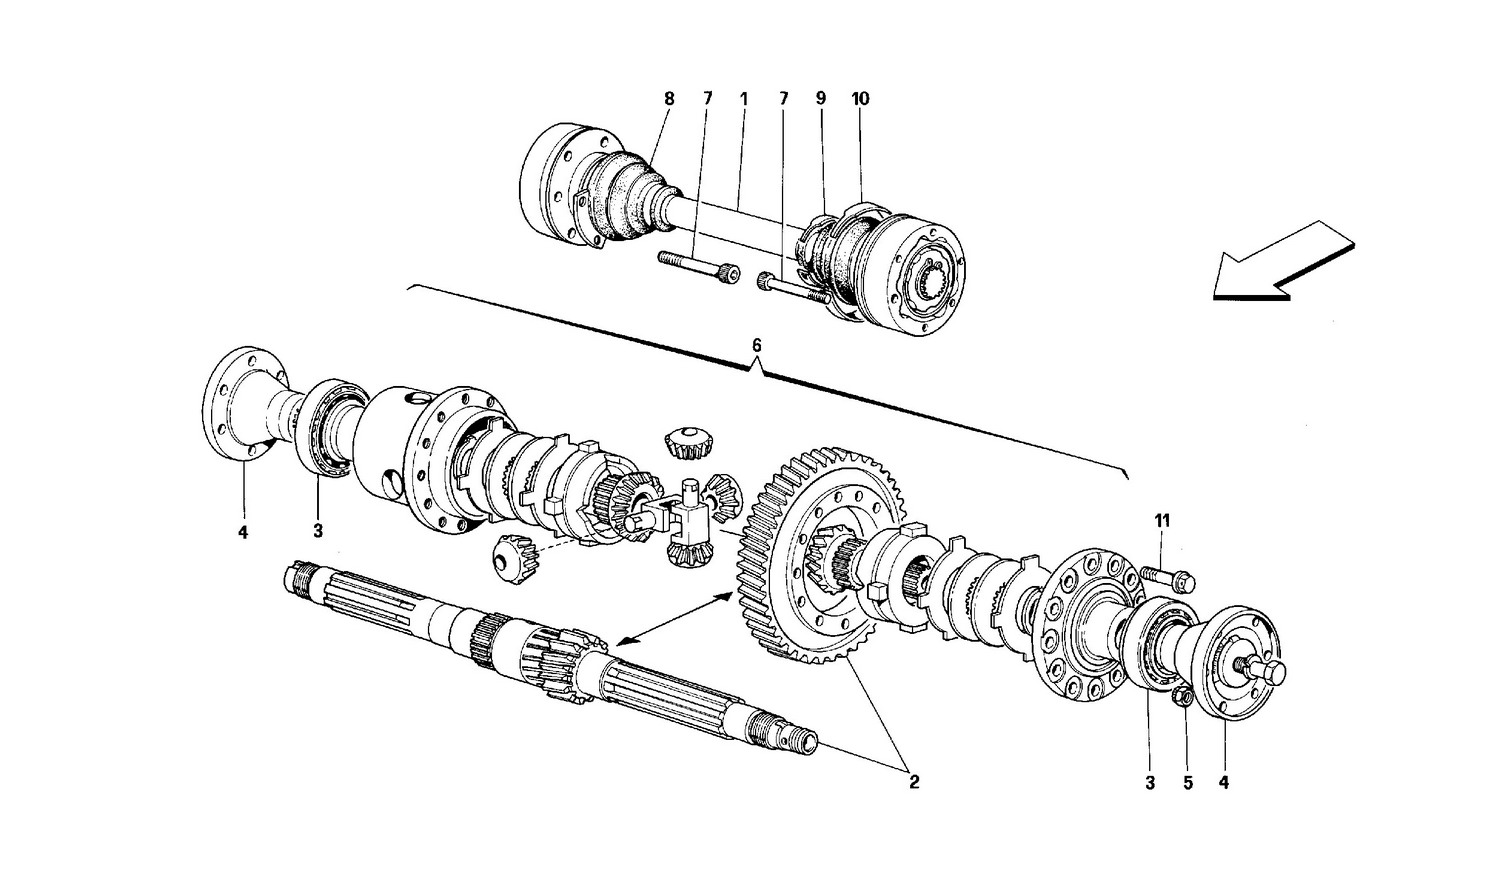 Schematic: Differential And Axle Shafts